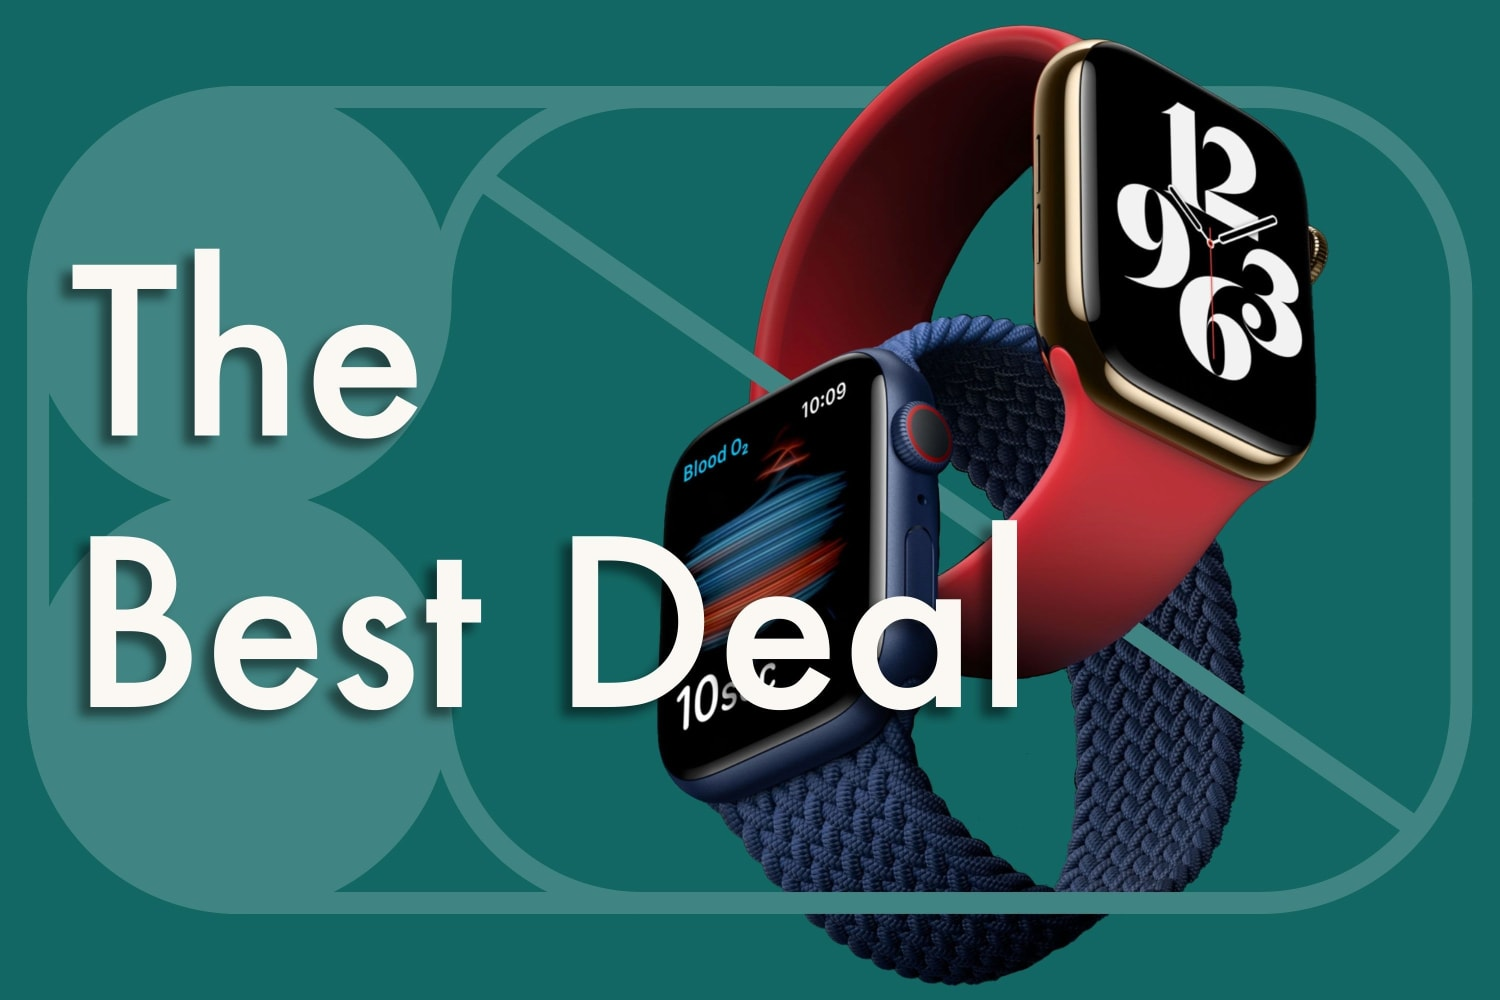 latest-apple-watch-series-6-and-se-are-out-here-are-the-deals-to-check-out-1